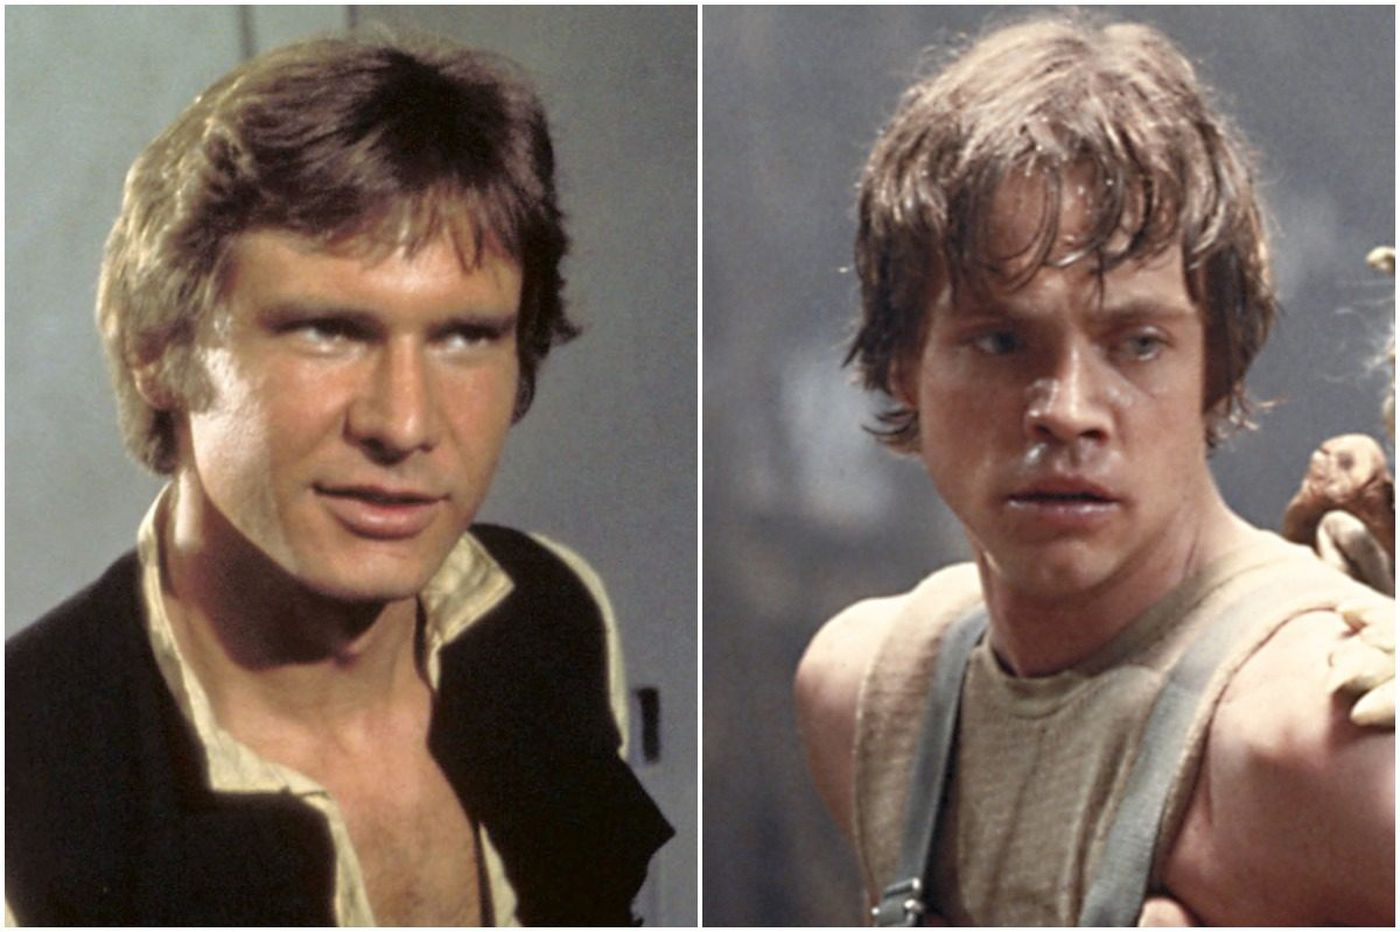 Han Solo or Luke Skywalker? This 'Star Wars' fan made his choice a long time ago